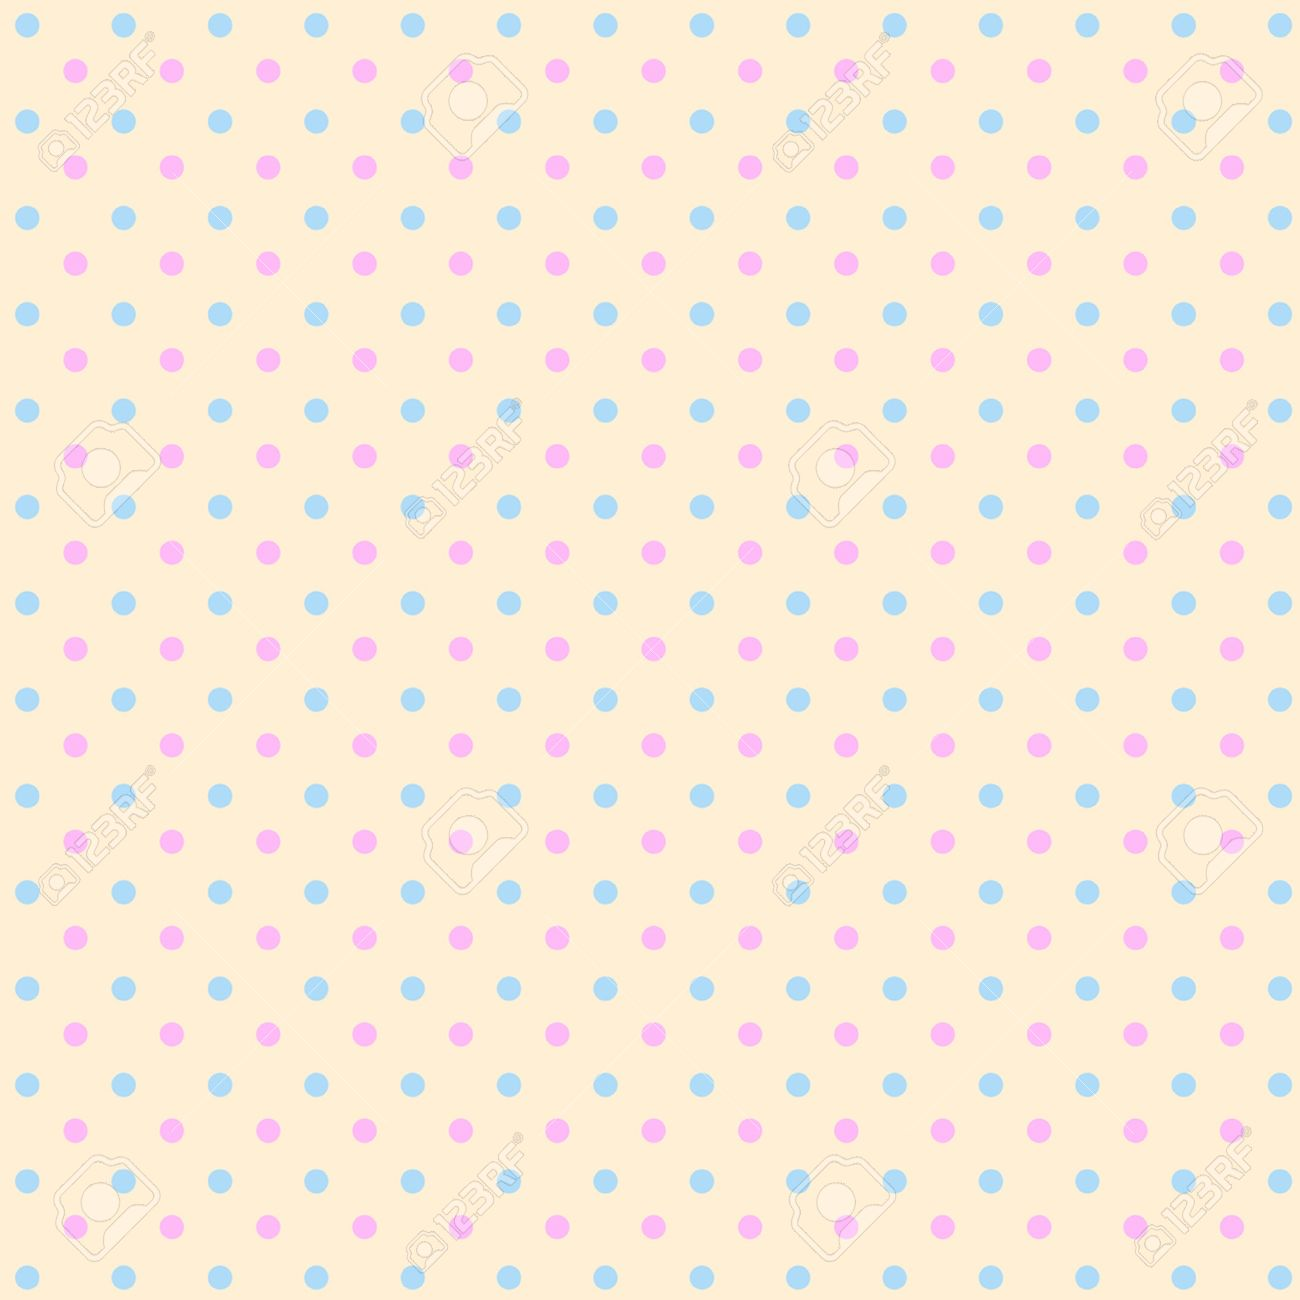 Multicolor Polka Dots Seamless Pattern Classic Stock Vector ...